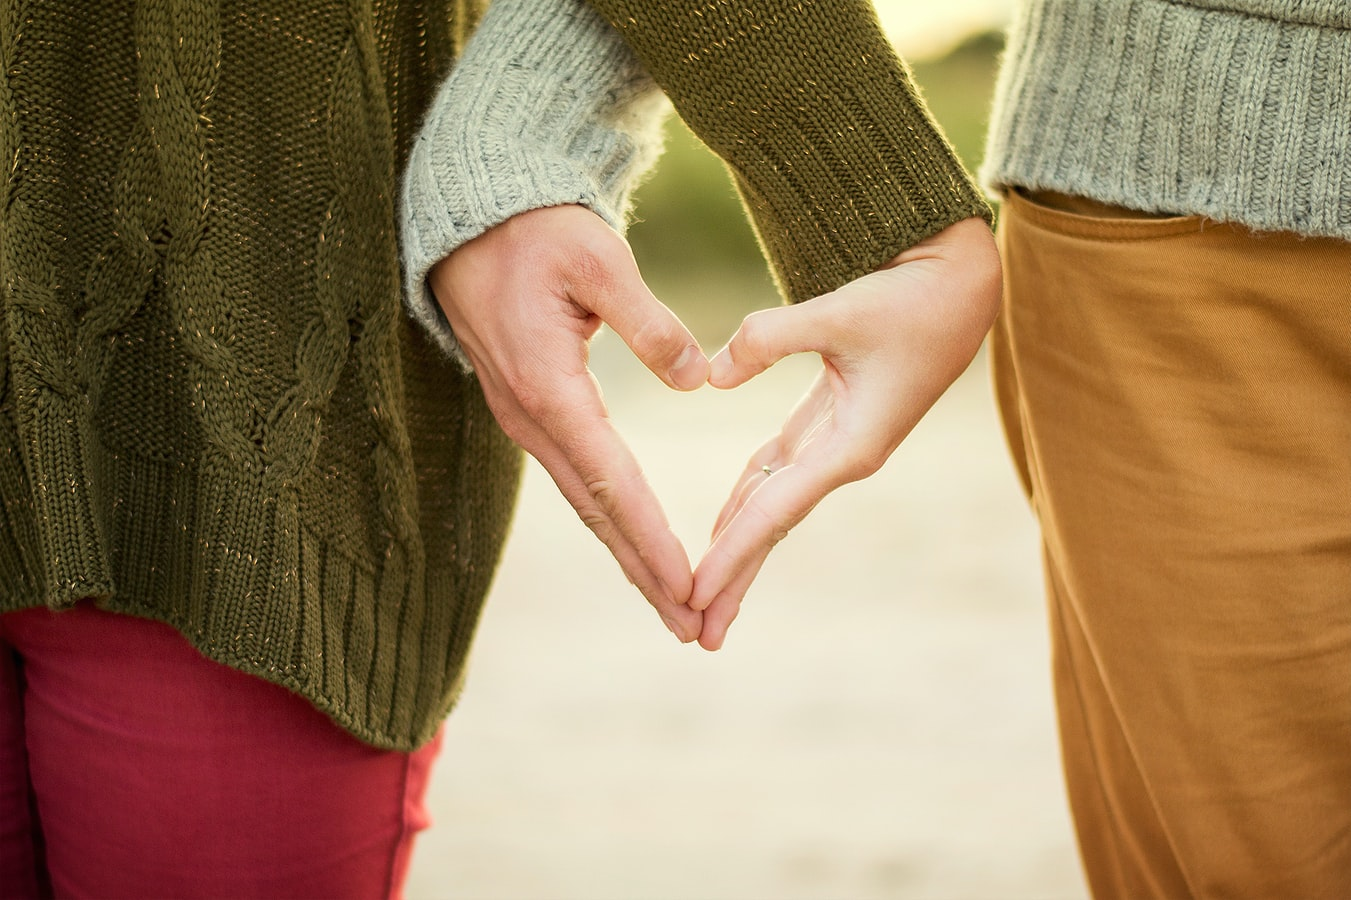 Modern gadgets and apps used by couples in love